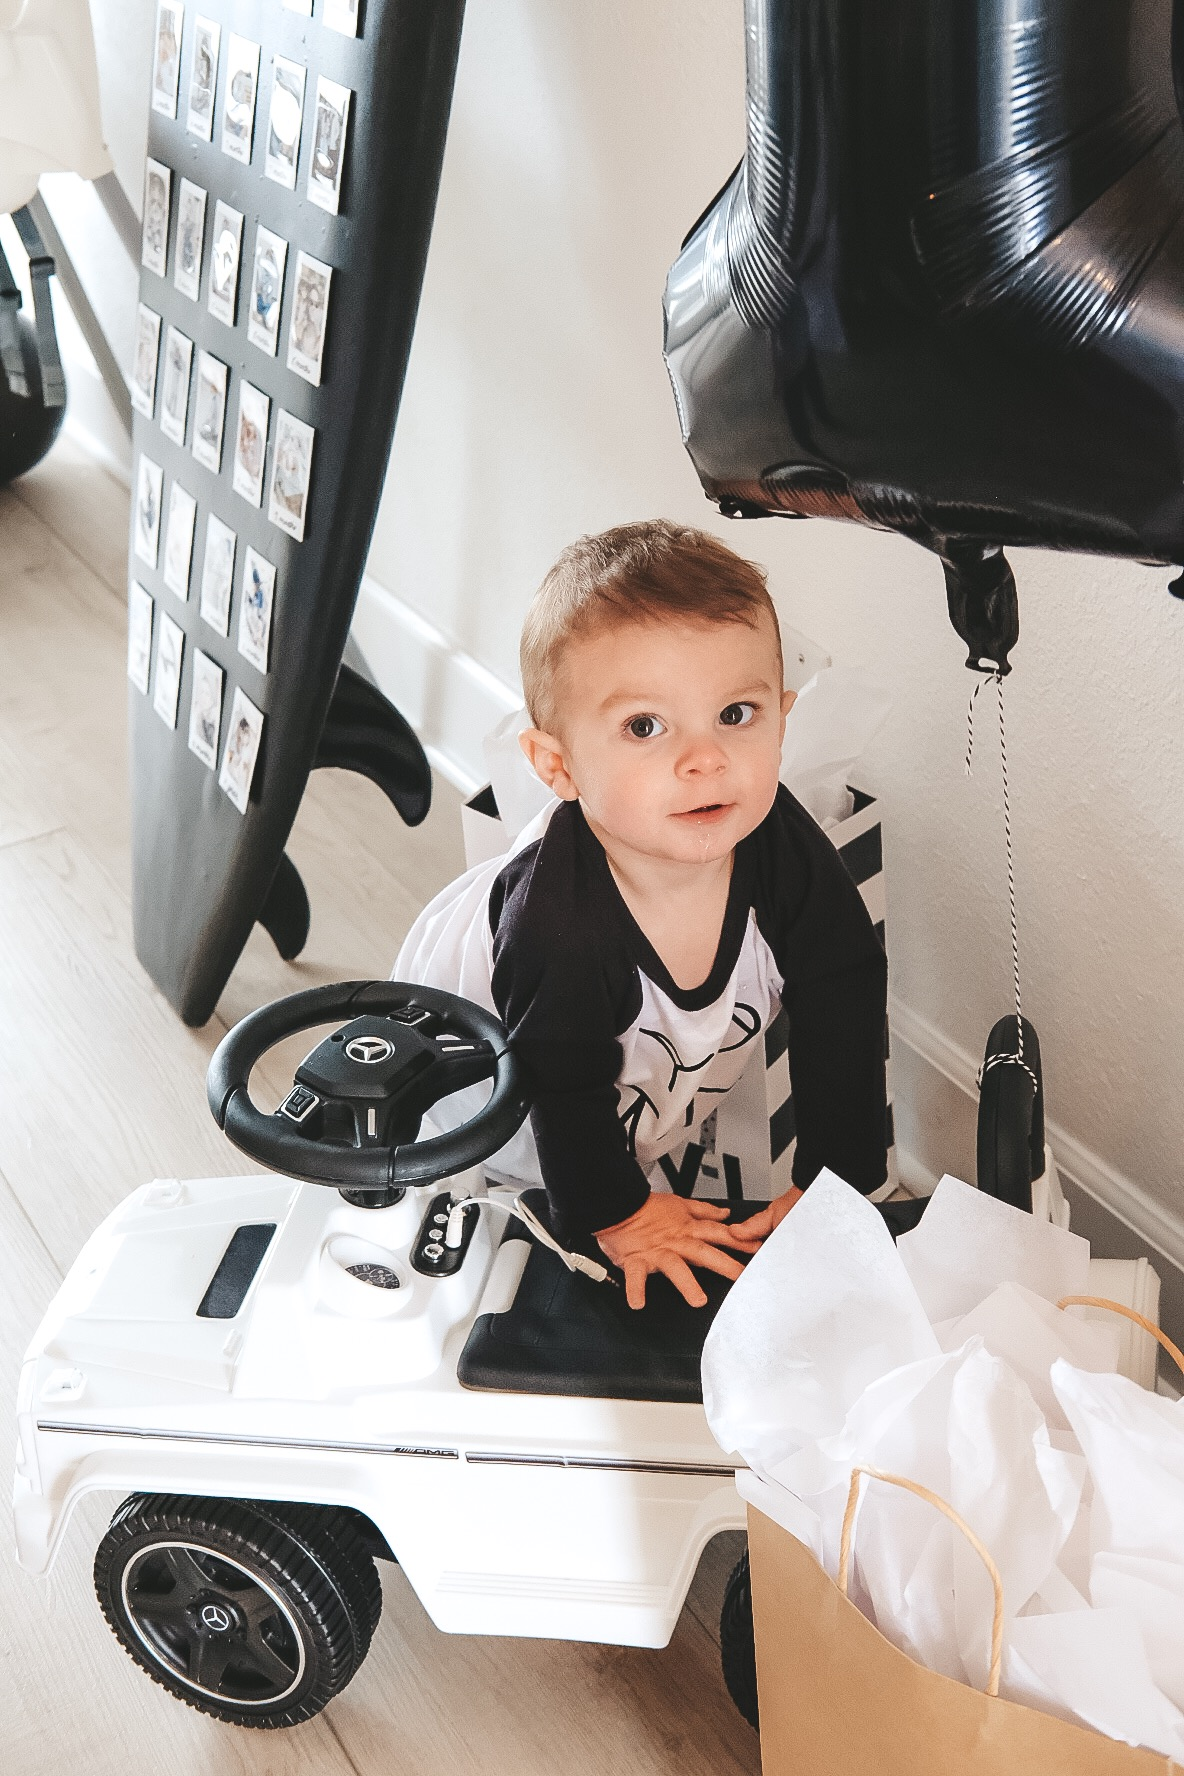 Modern surfer theme birthday party.  Black and white birthday party.  Baby boy frist birthday party. White G Wagon ride along car for 1 year old birthday gift.